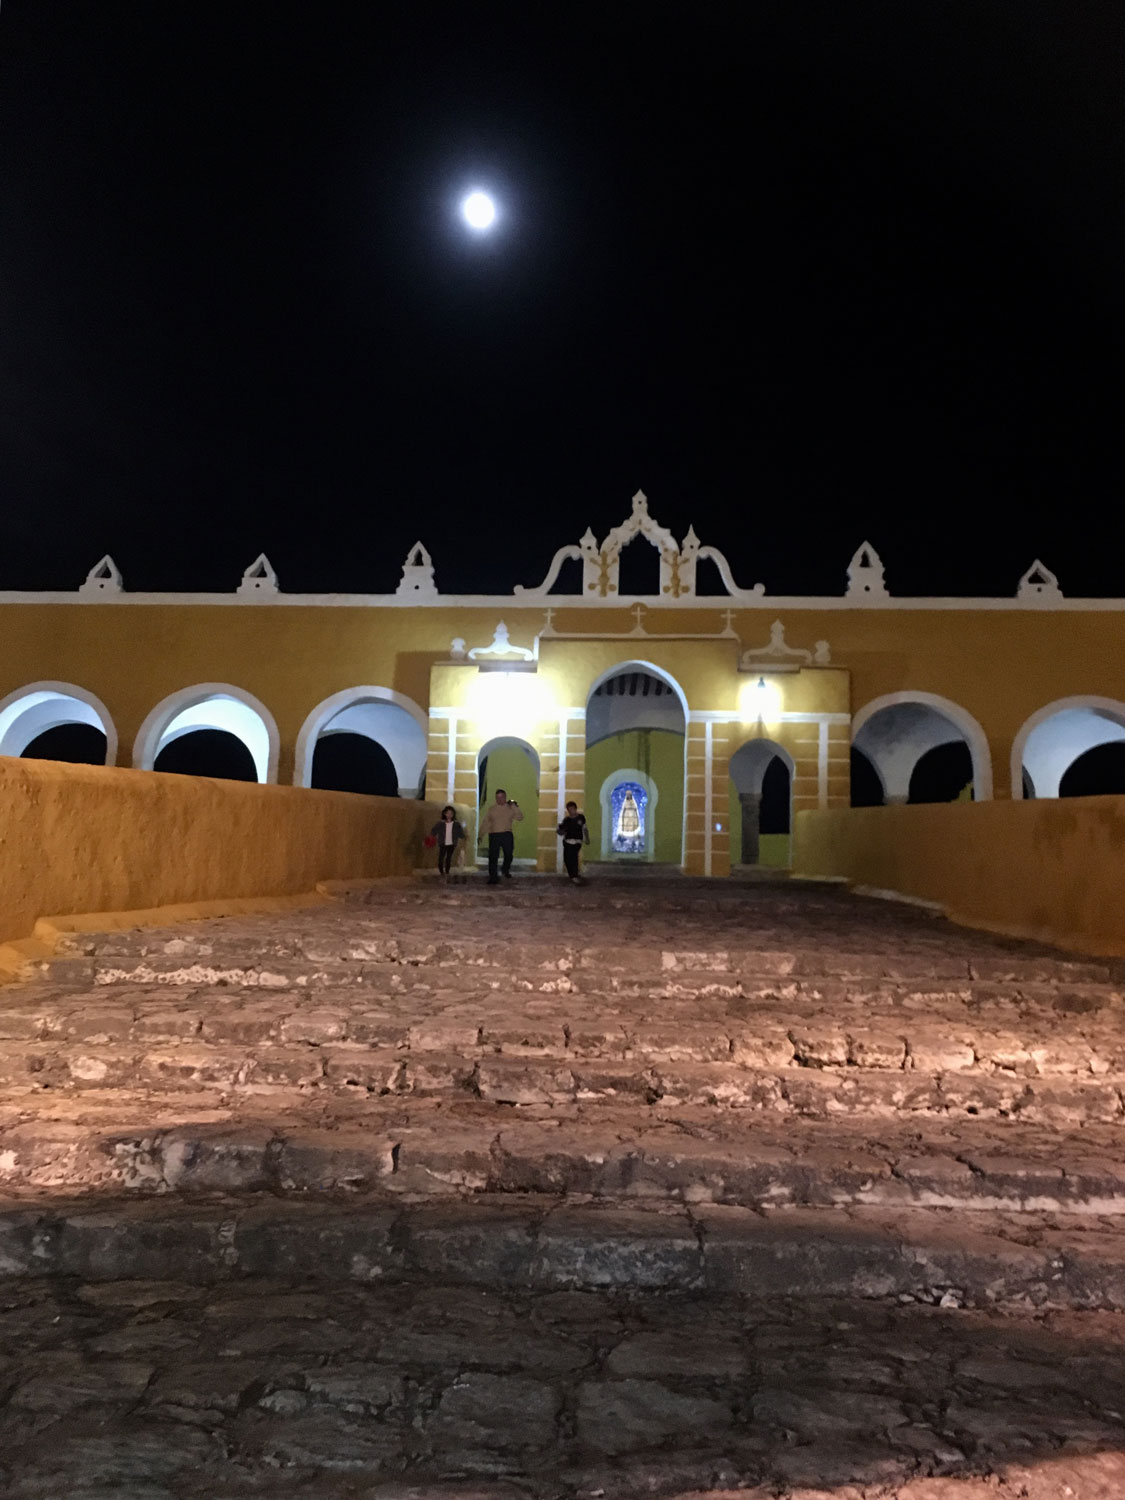 The Franciscan convent was built over the Mayan temple Ppap Hol Chak ('The house of the Rays'), the residence of important Maya lineages.